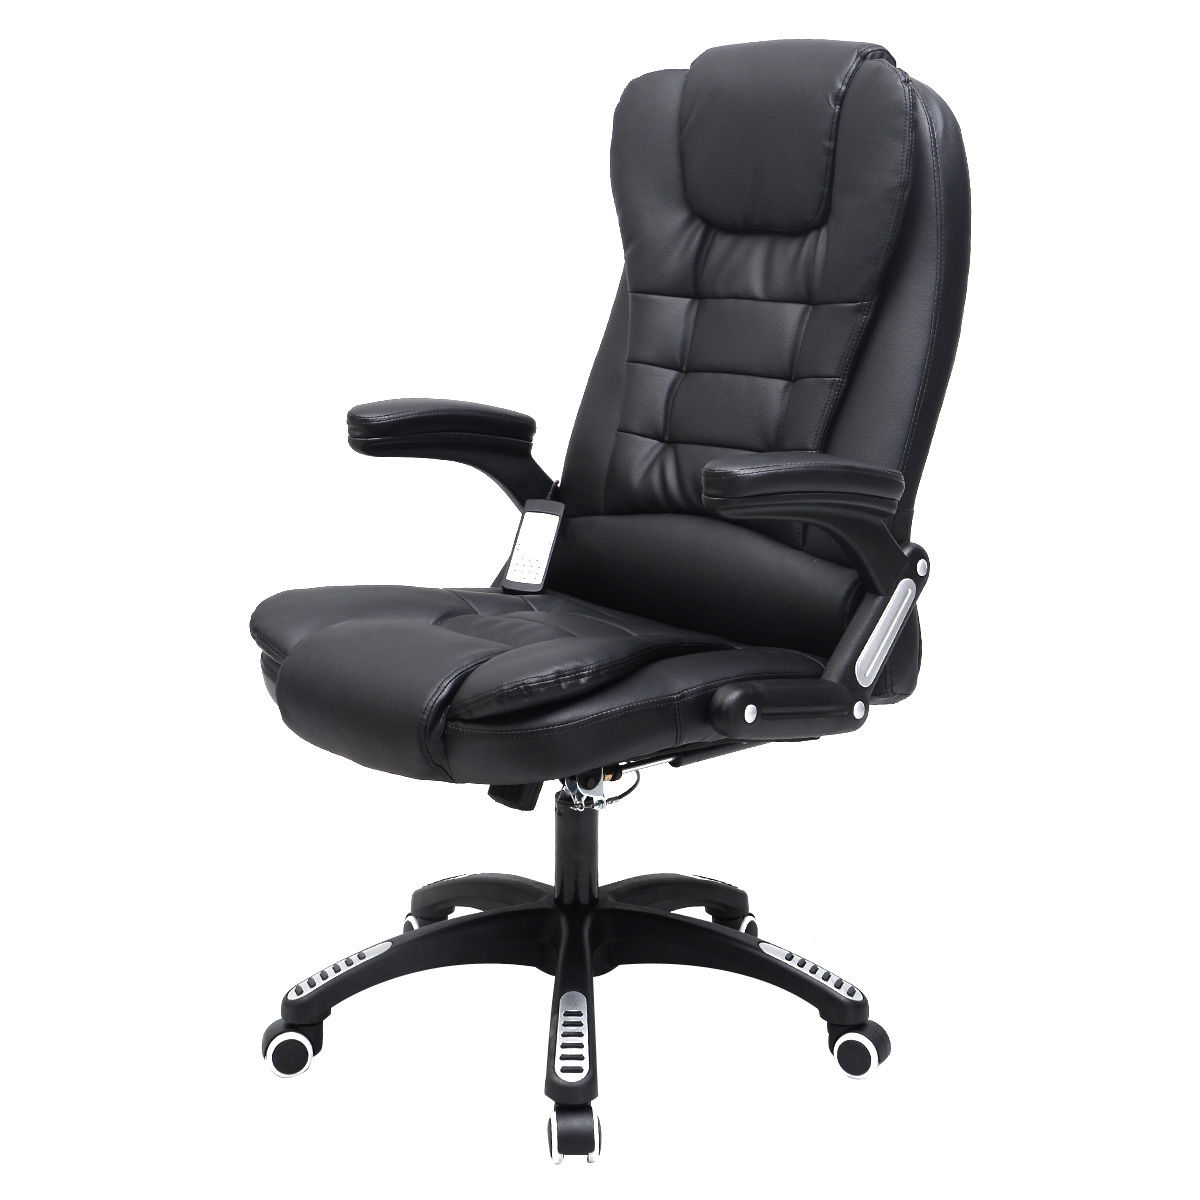 Costway Executive Ergonomic Computer Desk Massage Chair Vibrating Home Office